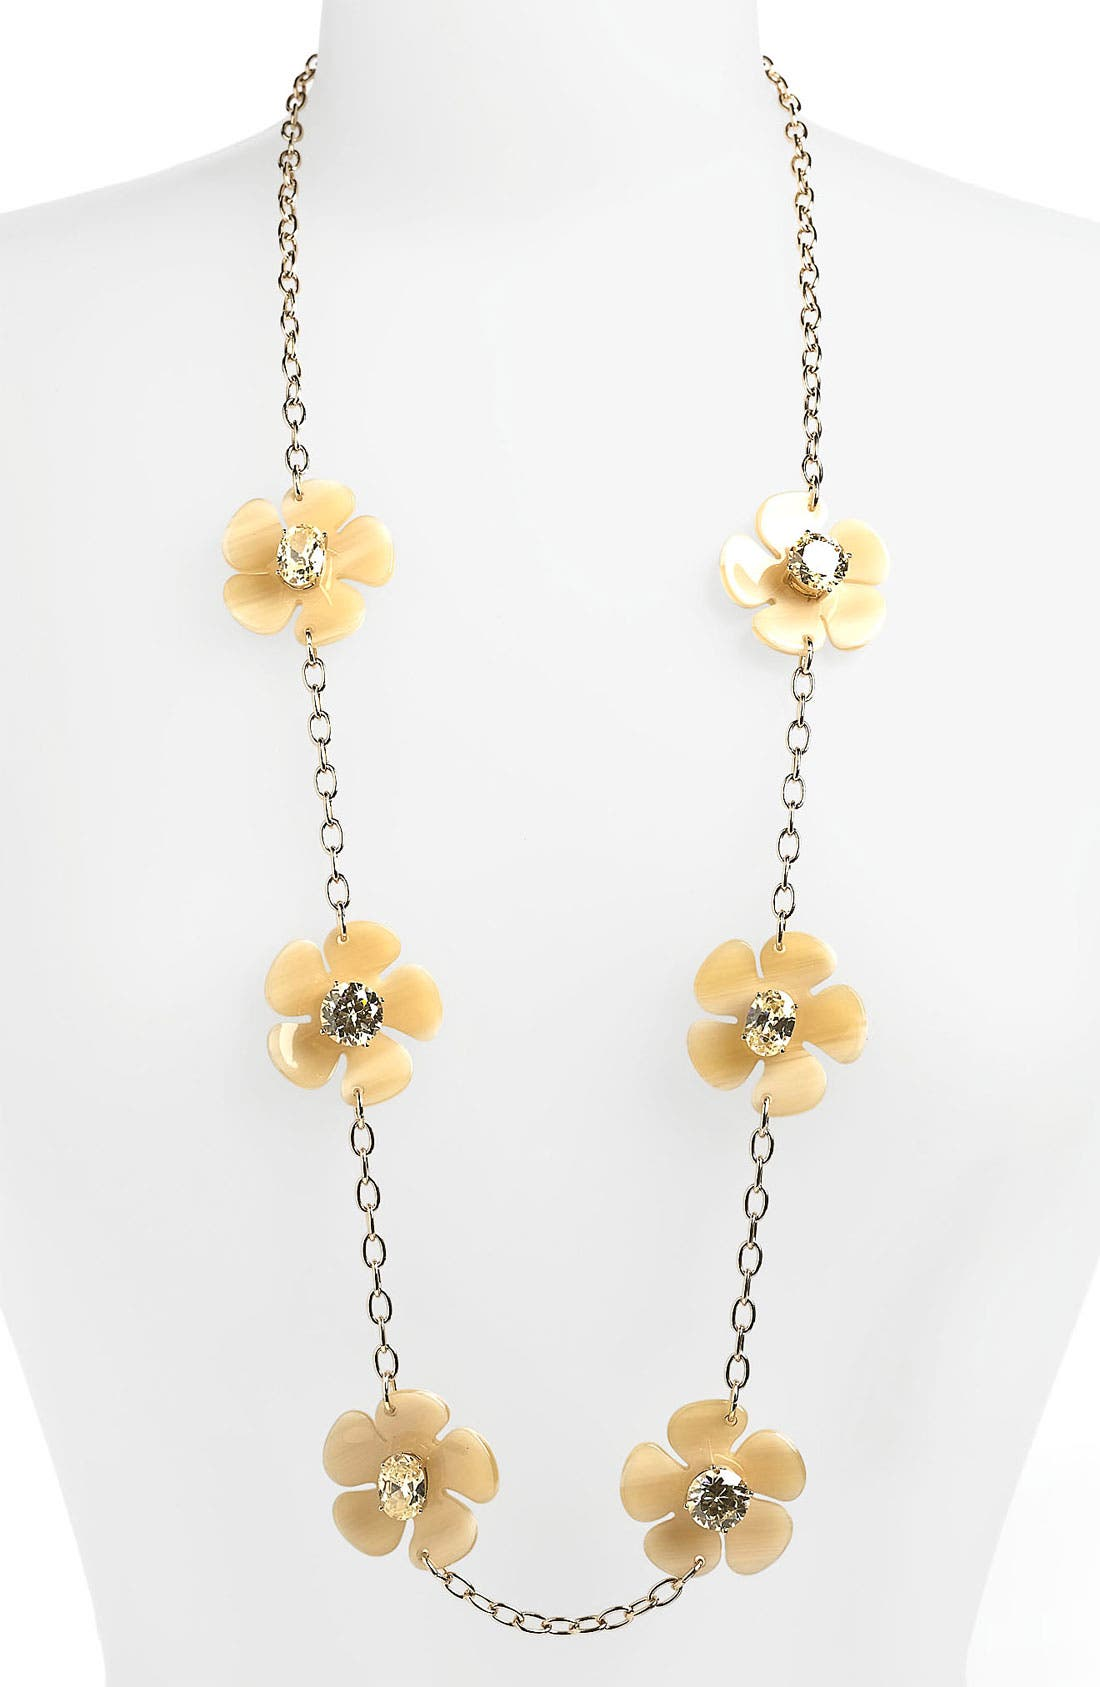 Main Image - Tory Burch 'Flora' Long Station Necklace